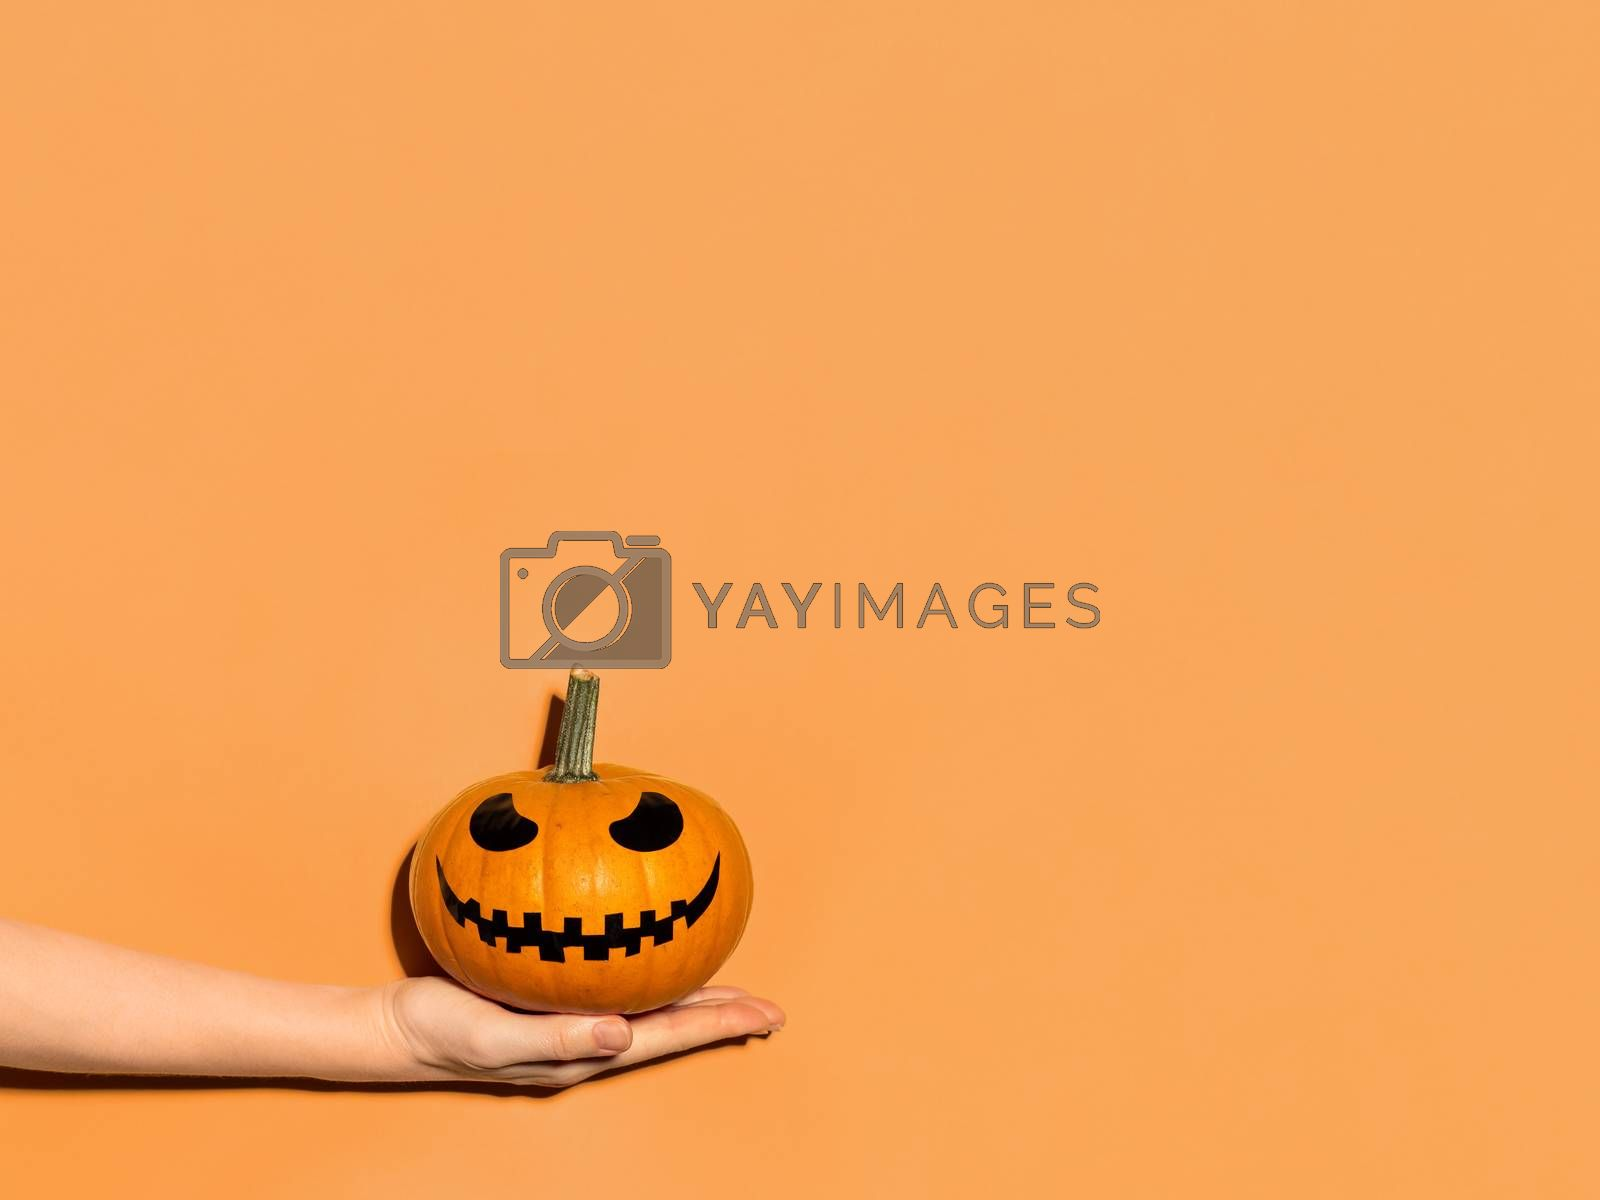 Halloween pumpkin in hand on orange background. Halloween concept with copy space for text or design. Hard light. Jack-o-lantern laughing face on orange squash